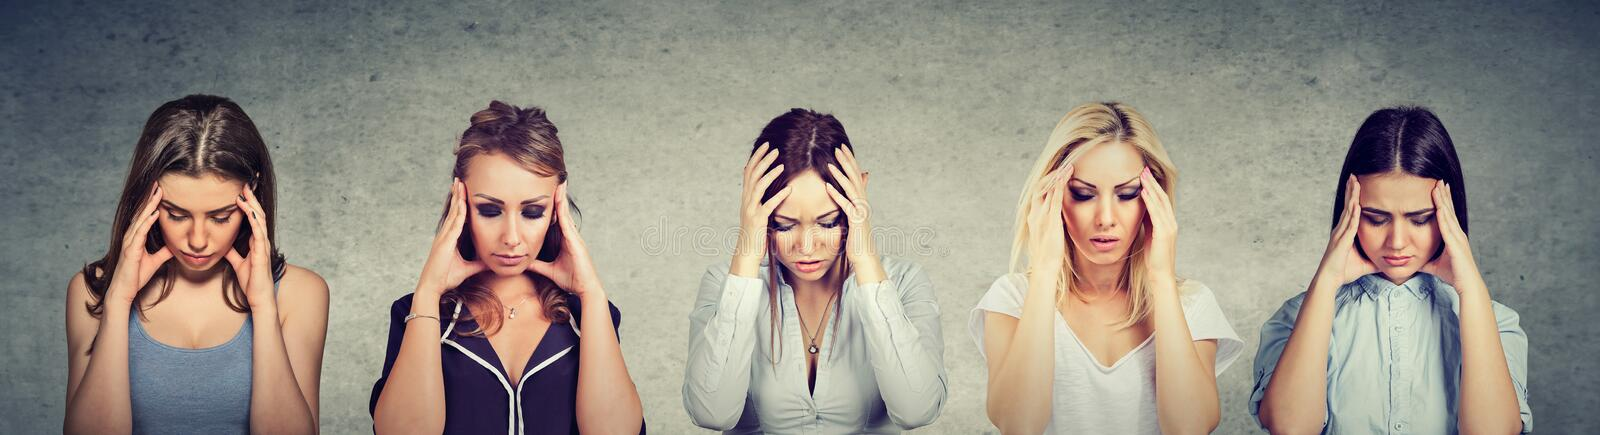 Portrait of sad young beautiful women looking down royalty free stock images